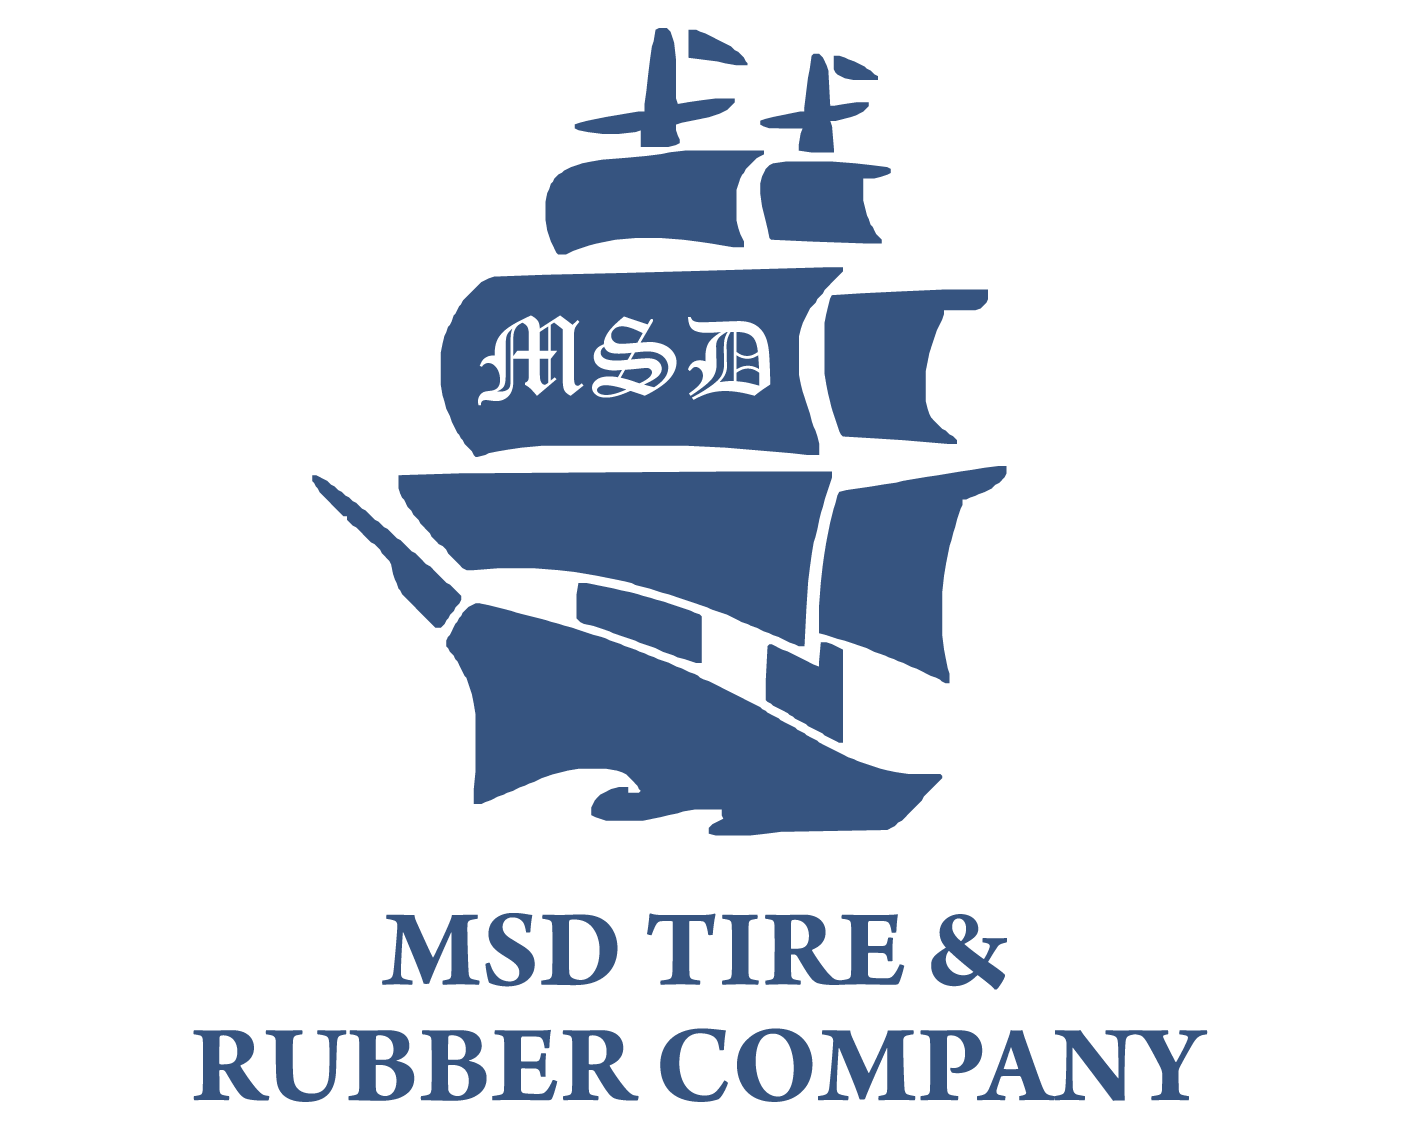 MSD Tires